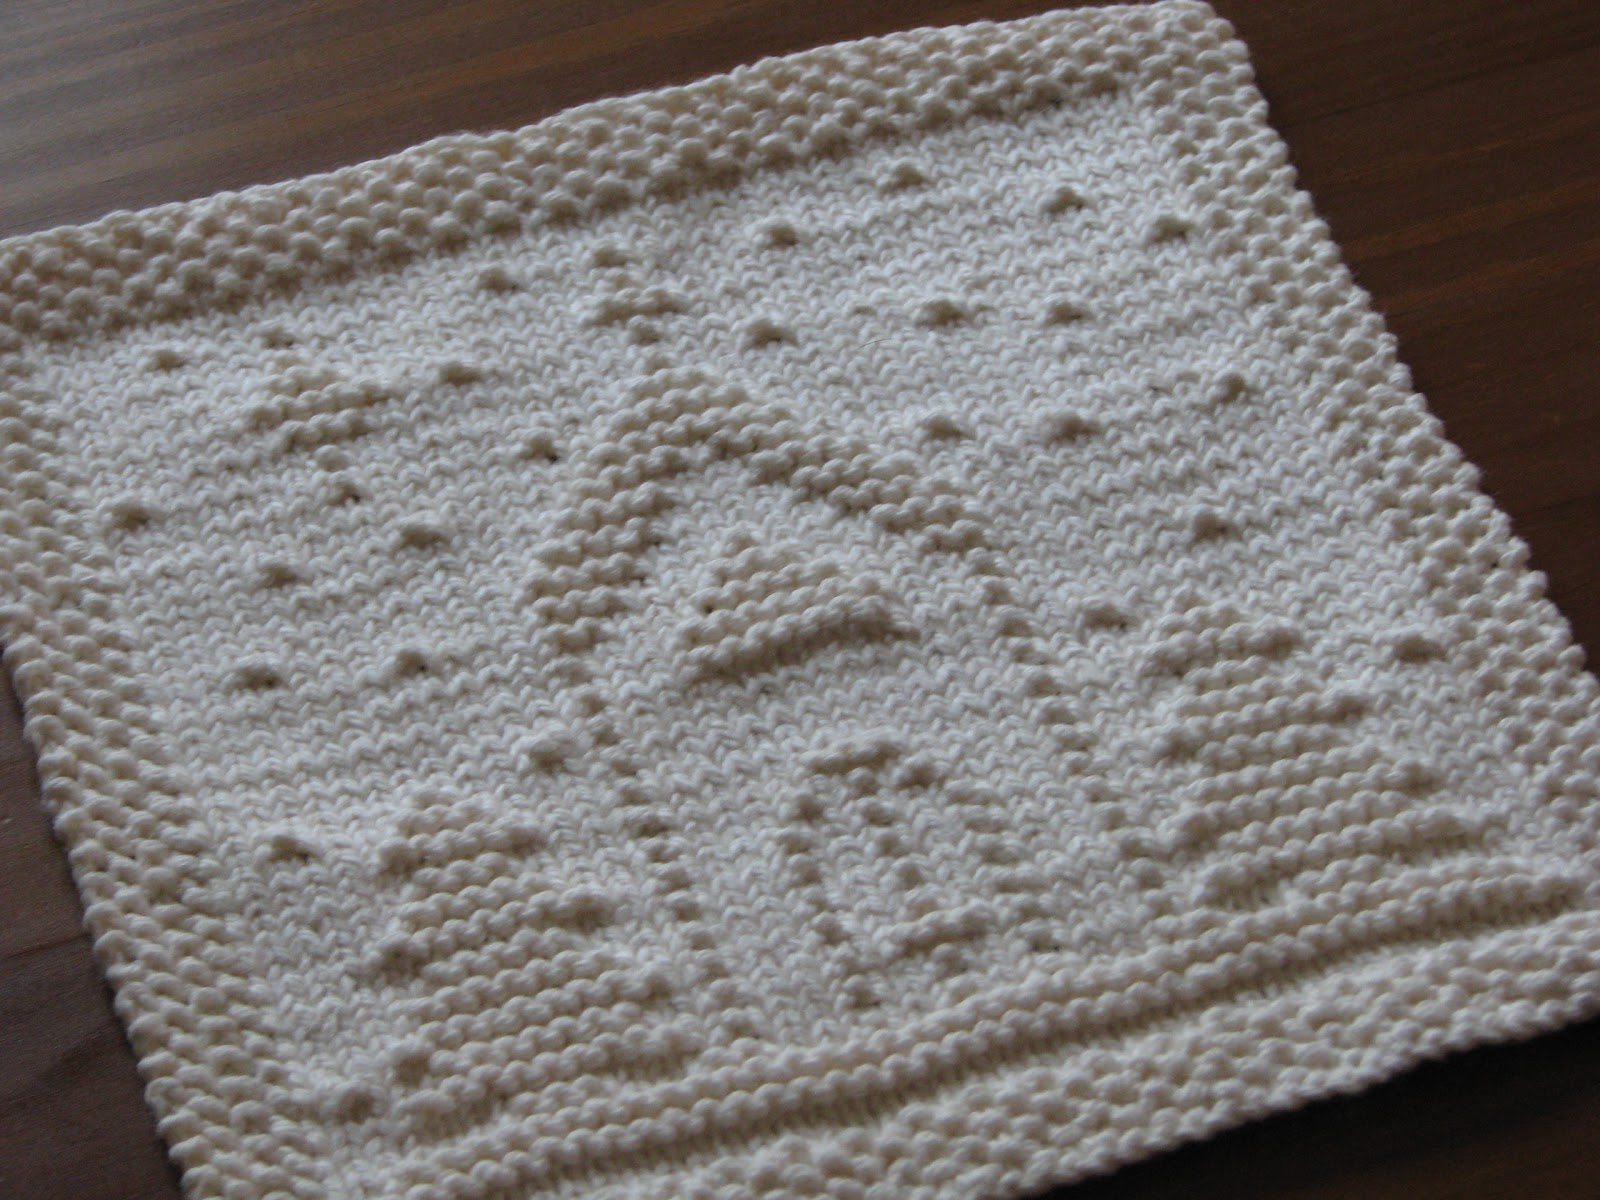 Knit Dishcloth Pattern Free : One Crafty Mama: O Holy Night Dishcloth